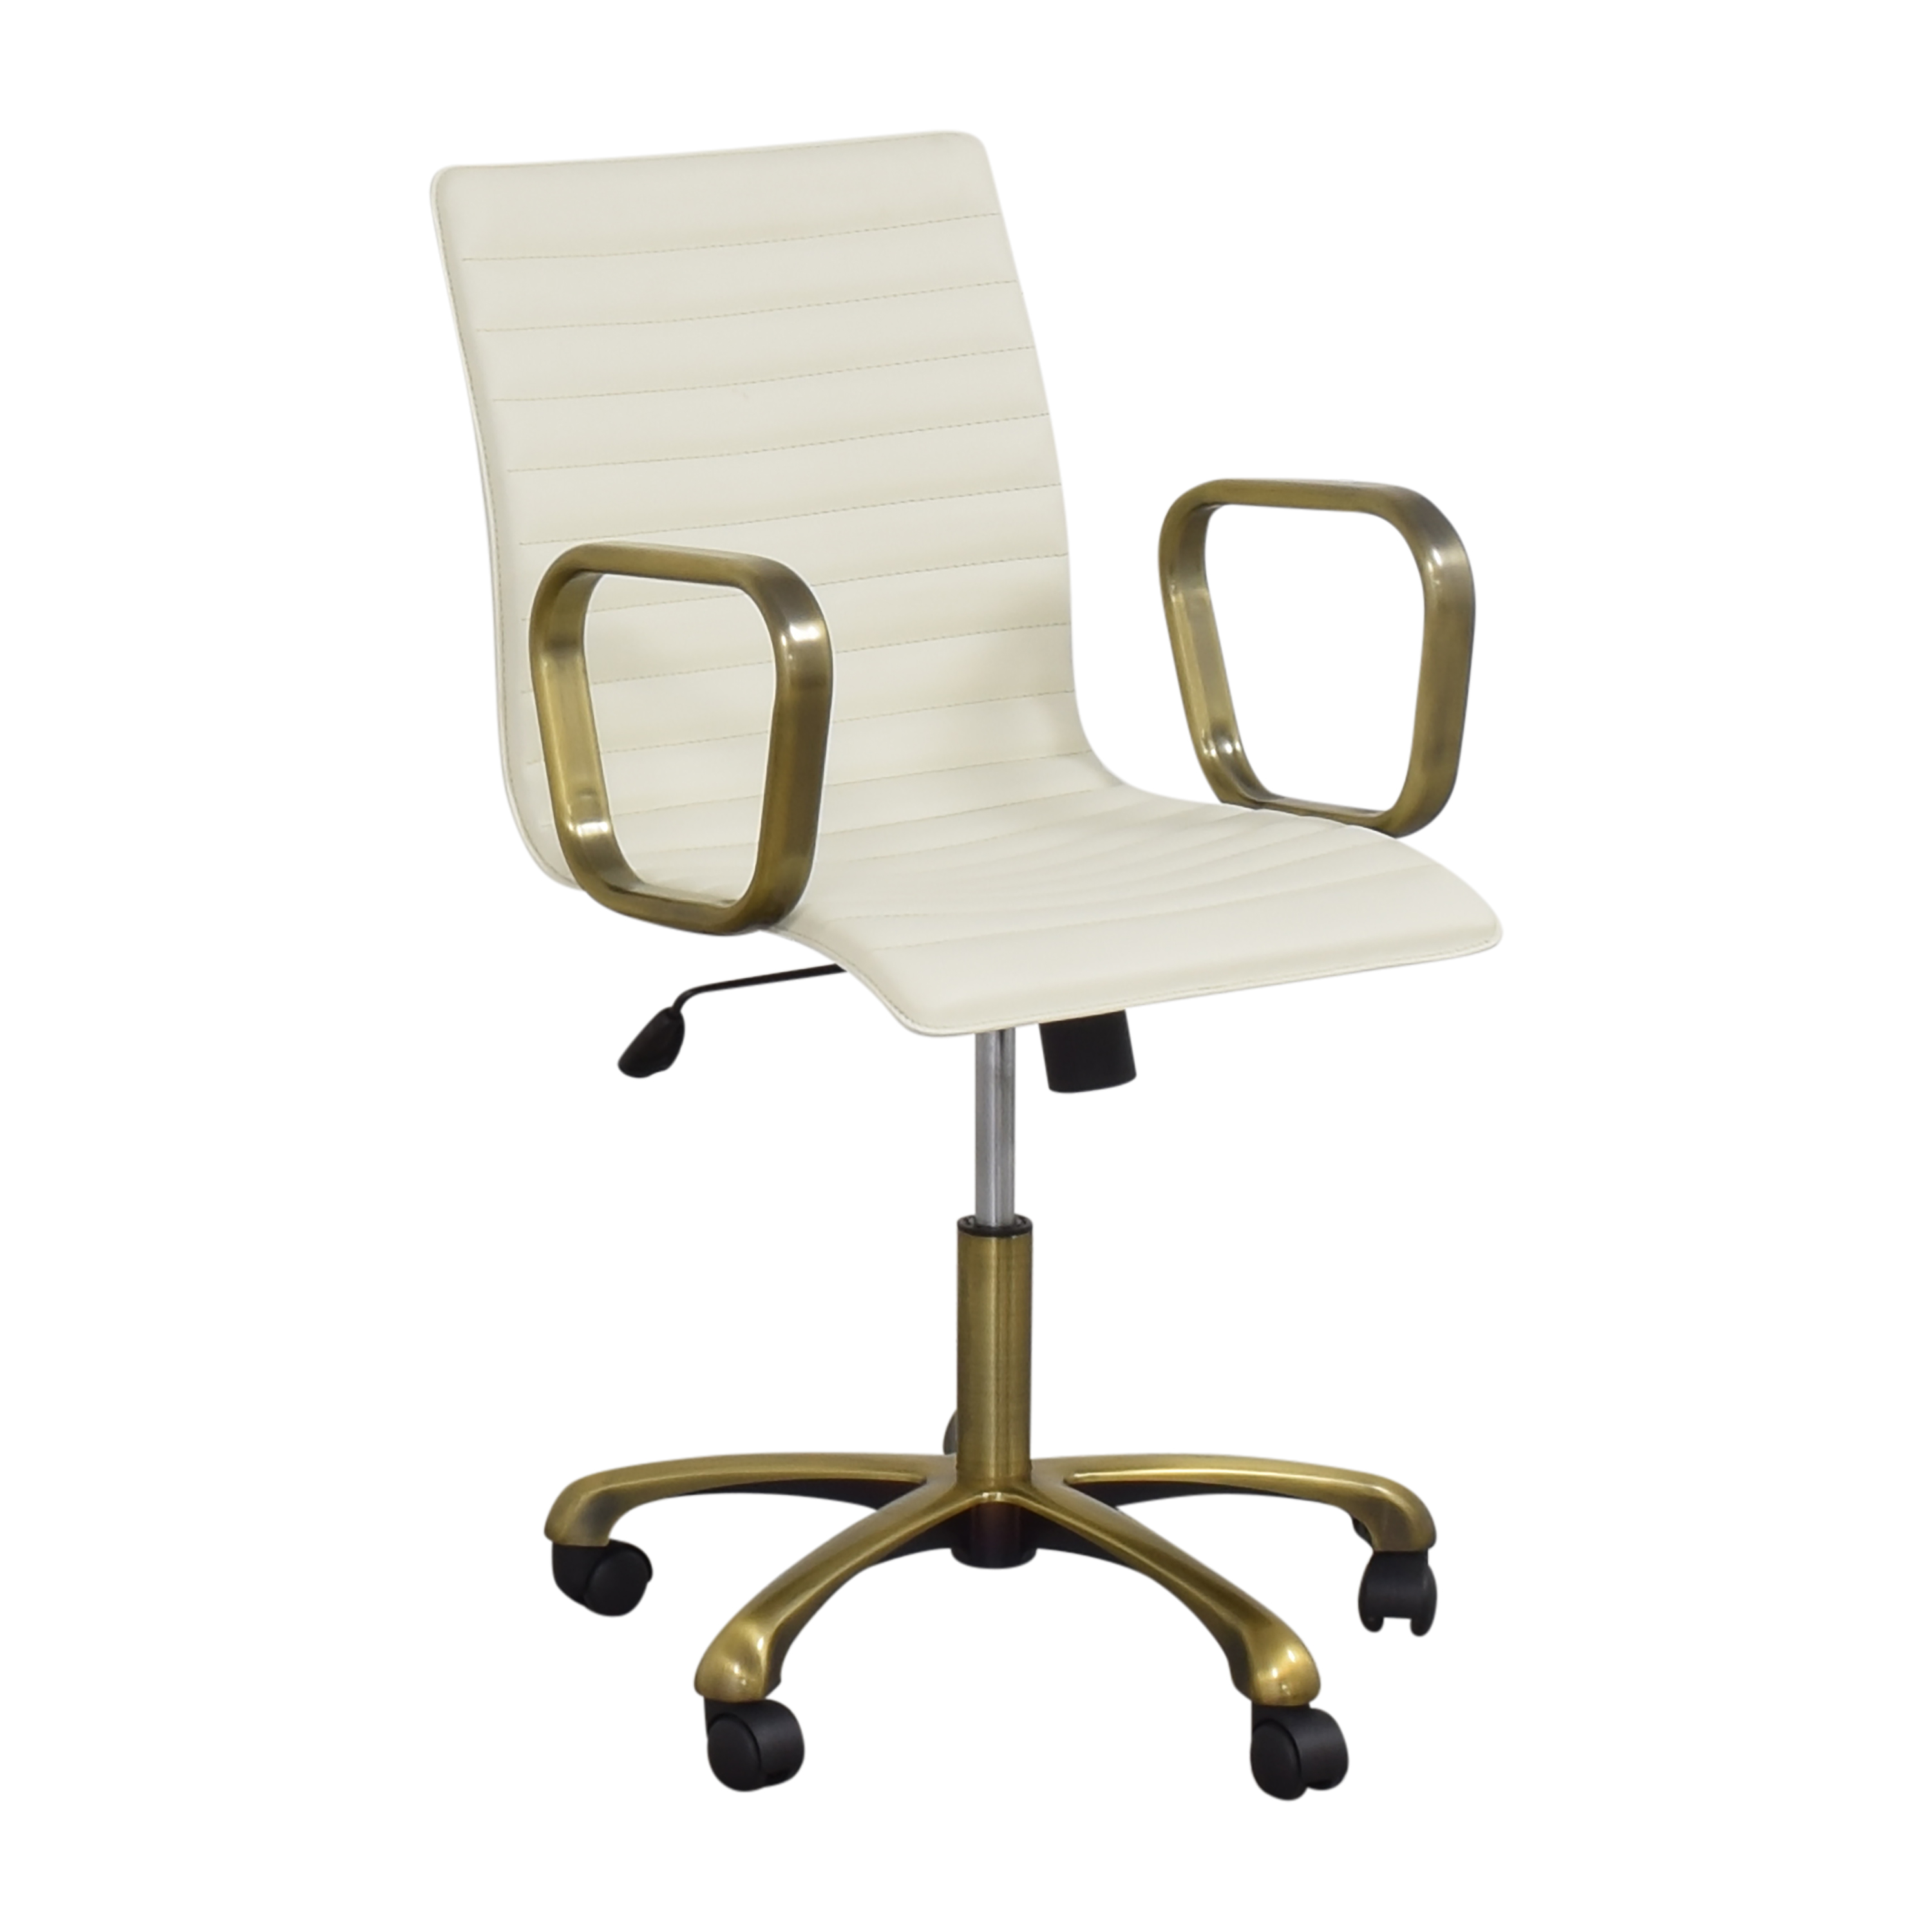 Crate & Barrel Crate & Barrel Ripple Office Chair second hand